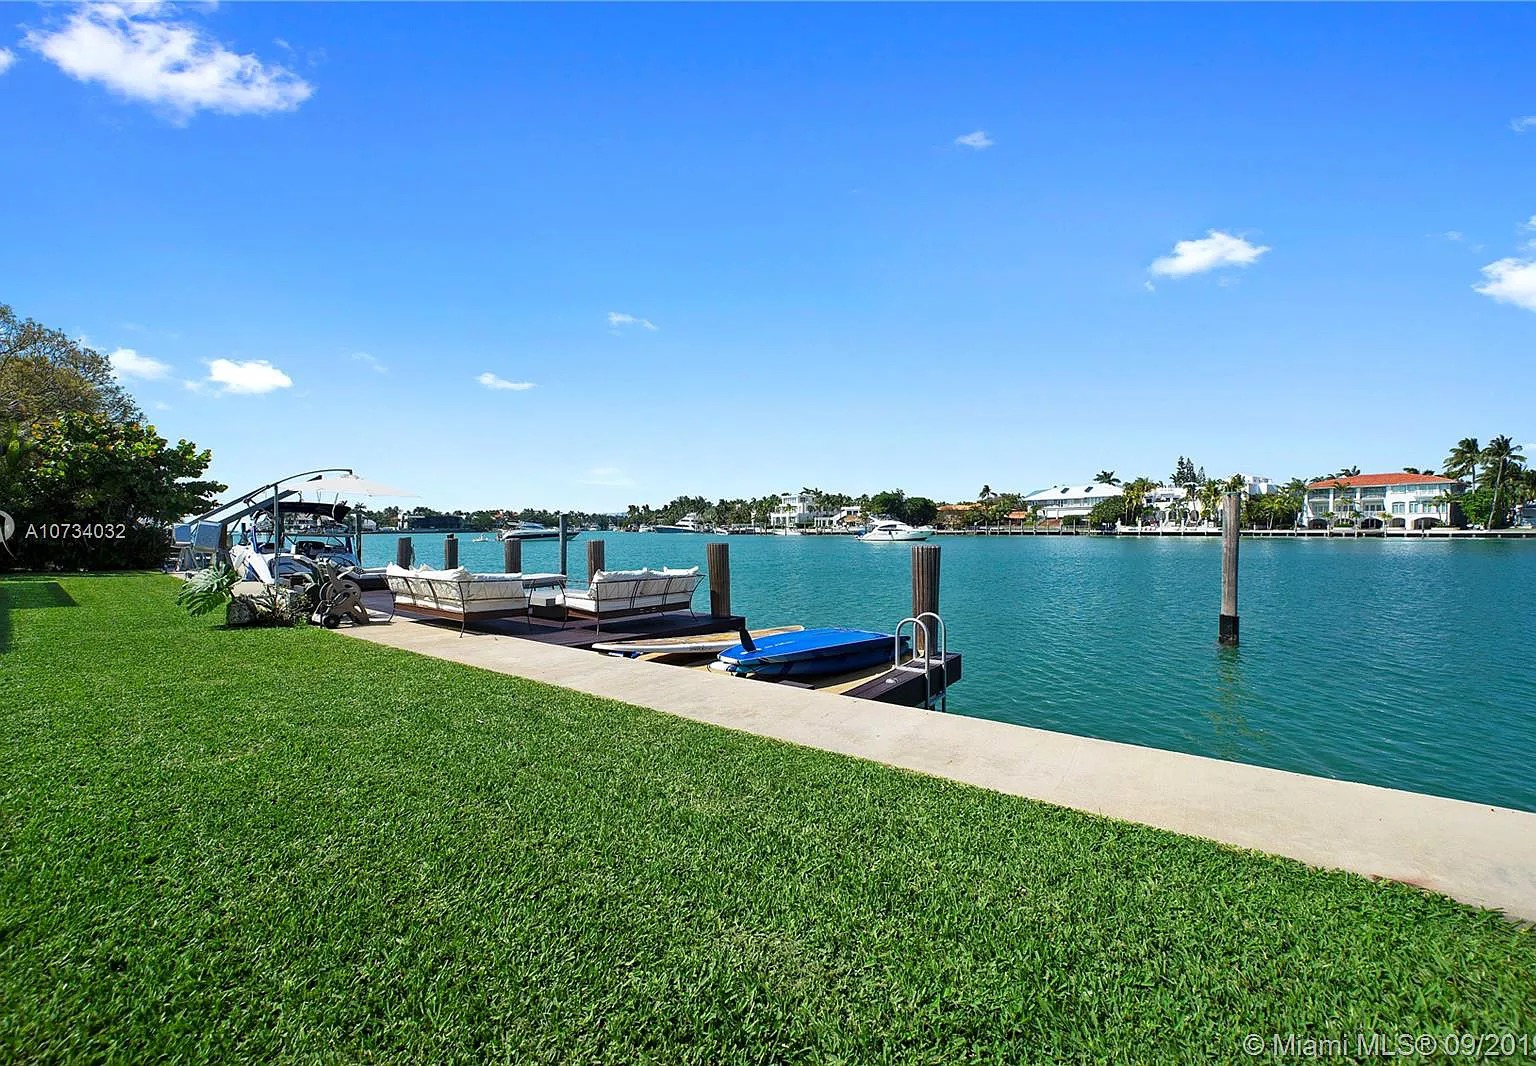 601 N Mashta Dr, Key Biscayne, FL 33149 - $7,350,000 home for sale, house images, photos and pics gallery